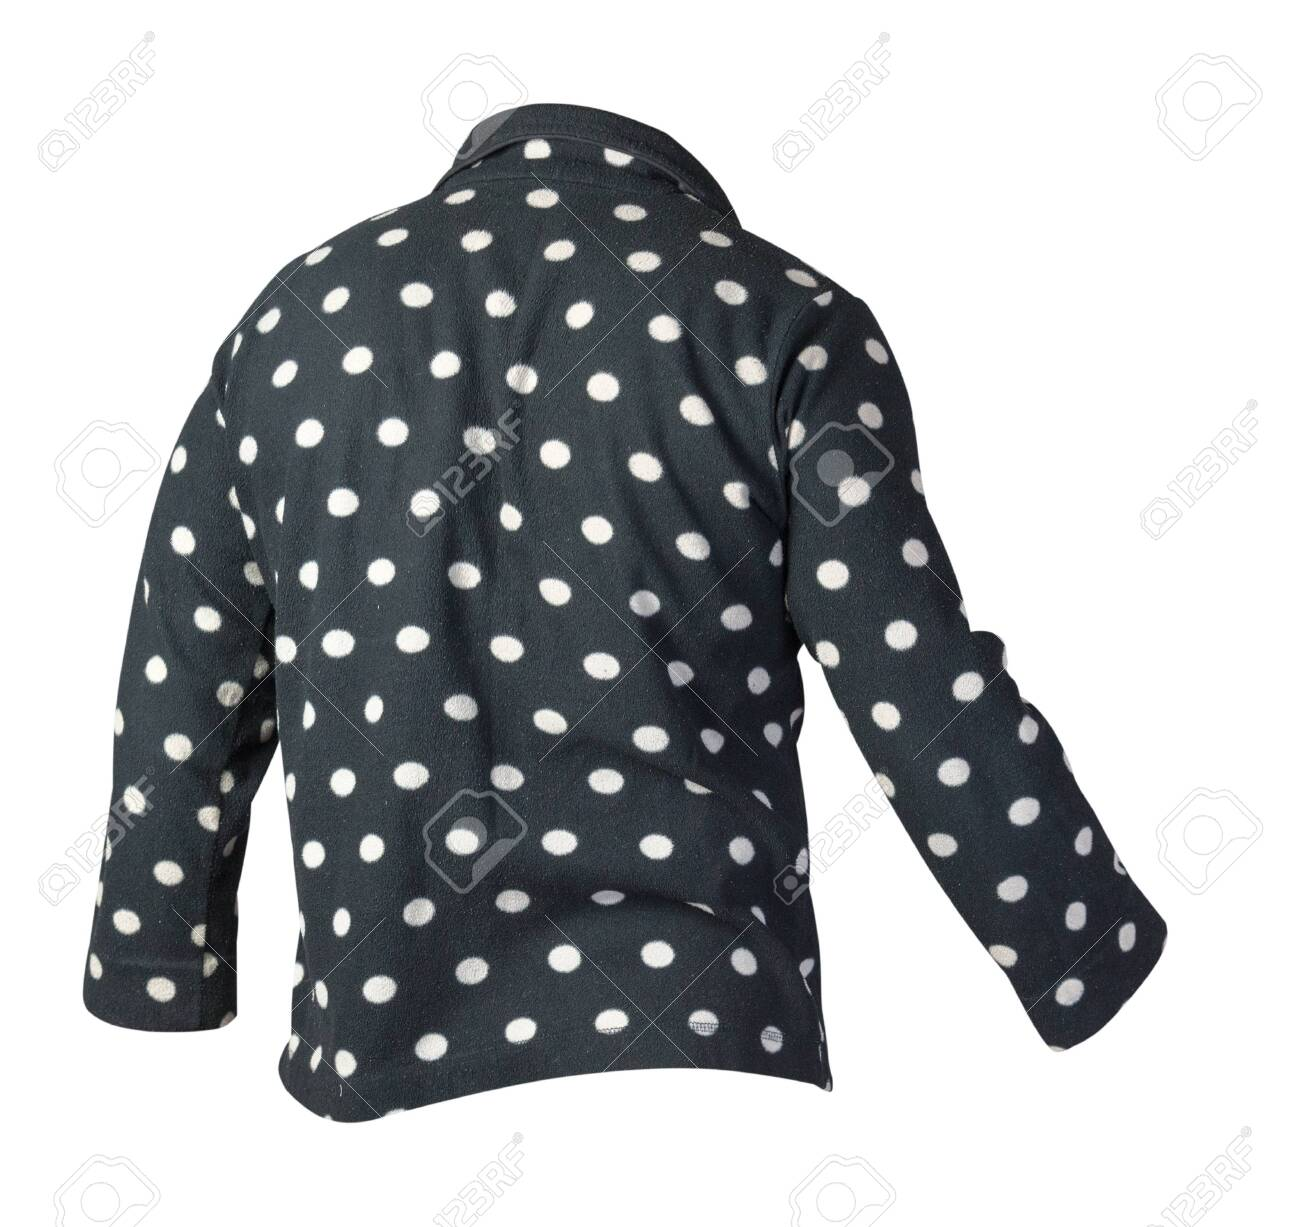 Female knitted black and white polka dot sweater isolated on..